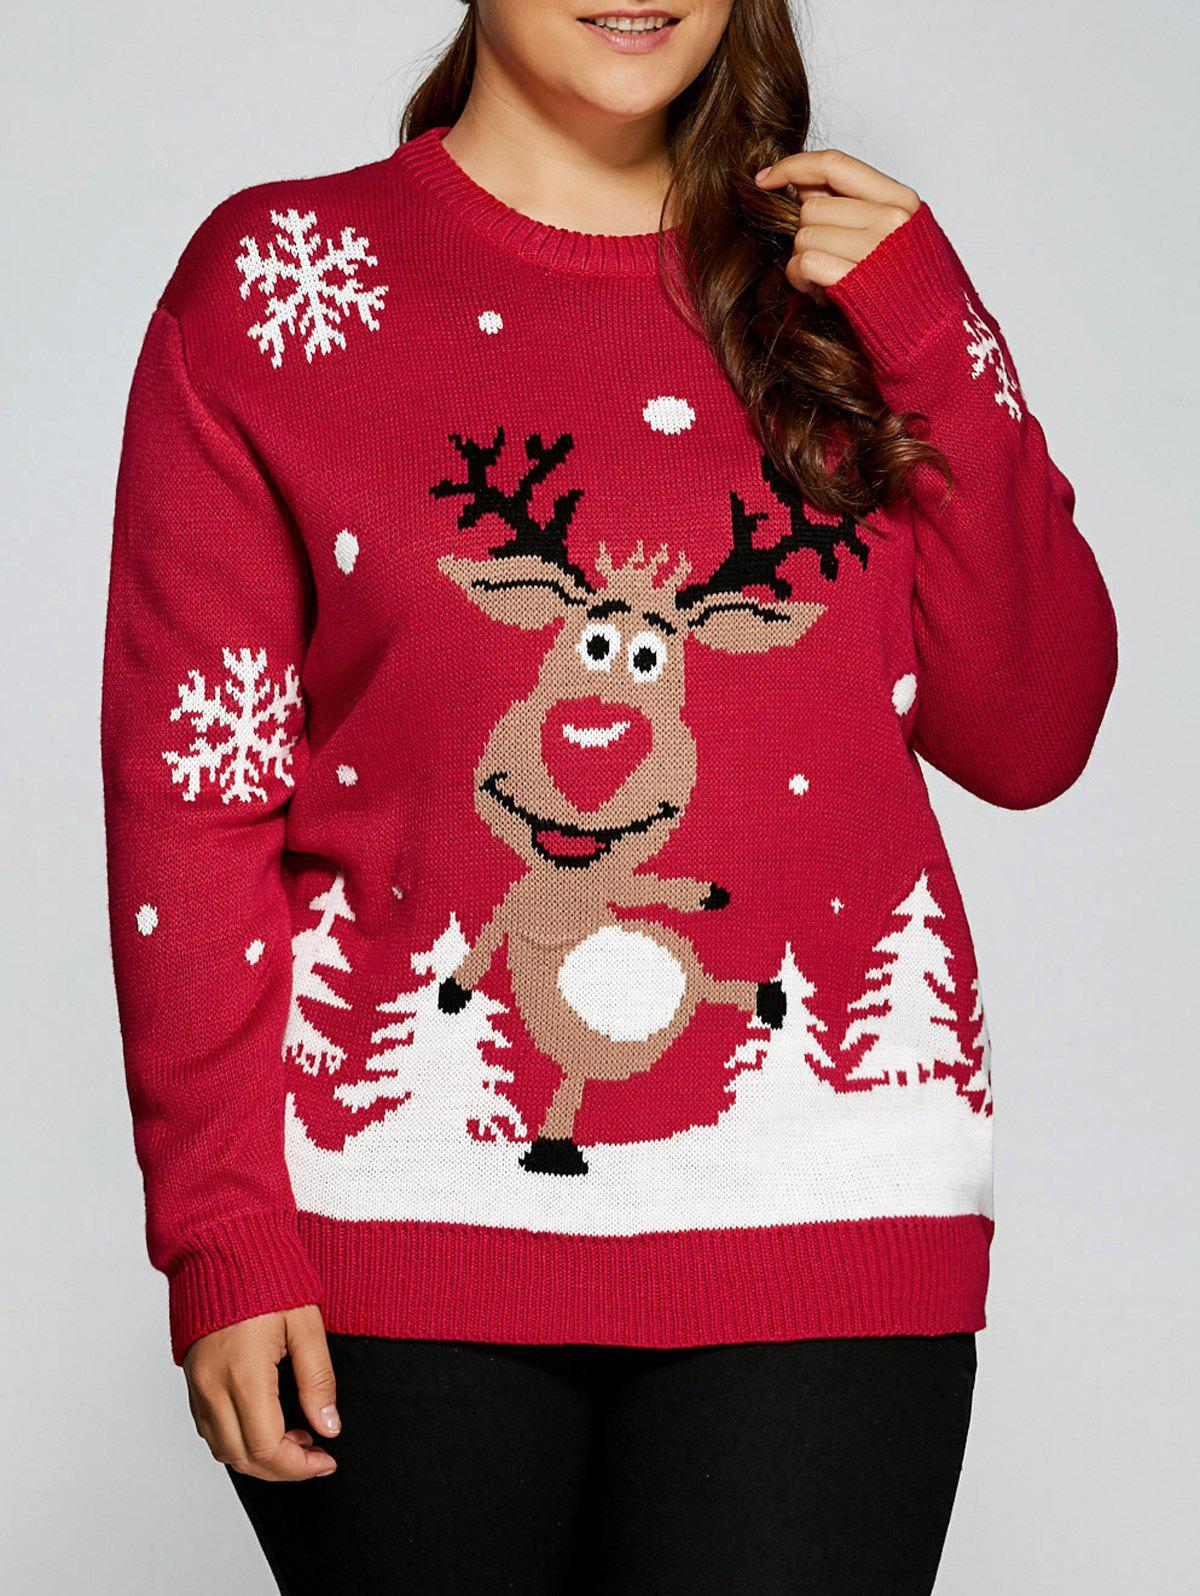 Plus Size Snowflake Fawn Christmas SweaterWOMEN<br><br>Size: 5XL; Color: RED; Type: Pullovers; Material: Acrylic,Polyester; Sleeve Length: Full; Collar: Round Neck; Style: Casual; Season: Fall,Spring,Winter; Pattern Type: Animal; Weight: 0.550kg; Package Contents: 1 x Sweater;